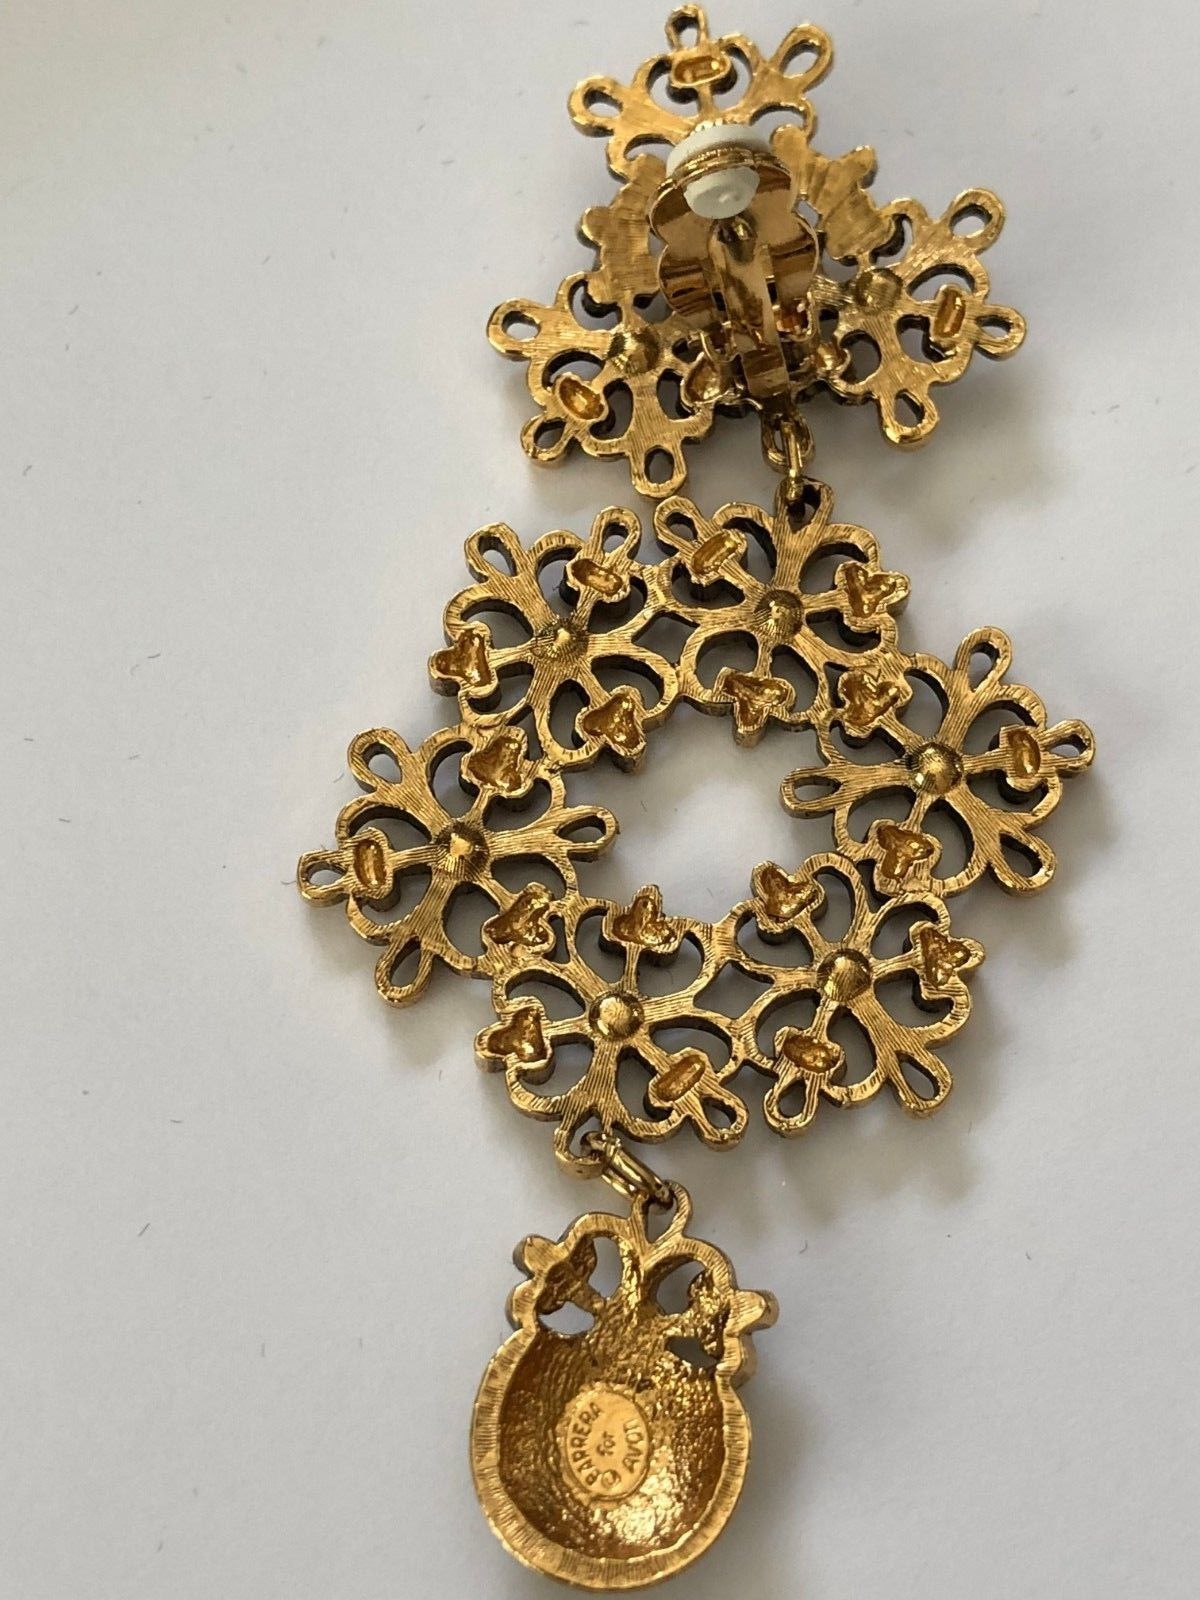 Jose' Maria Barrera for Avon Clip-On Dramatic Gold/Sparkly Chandelier Earrings